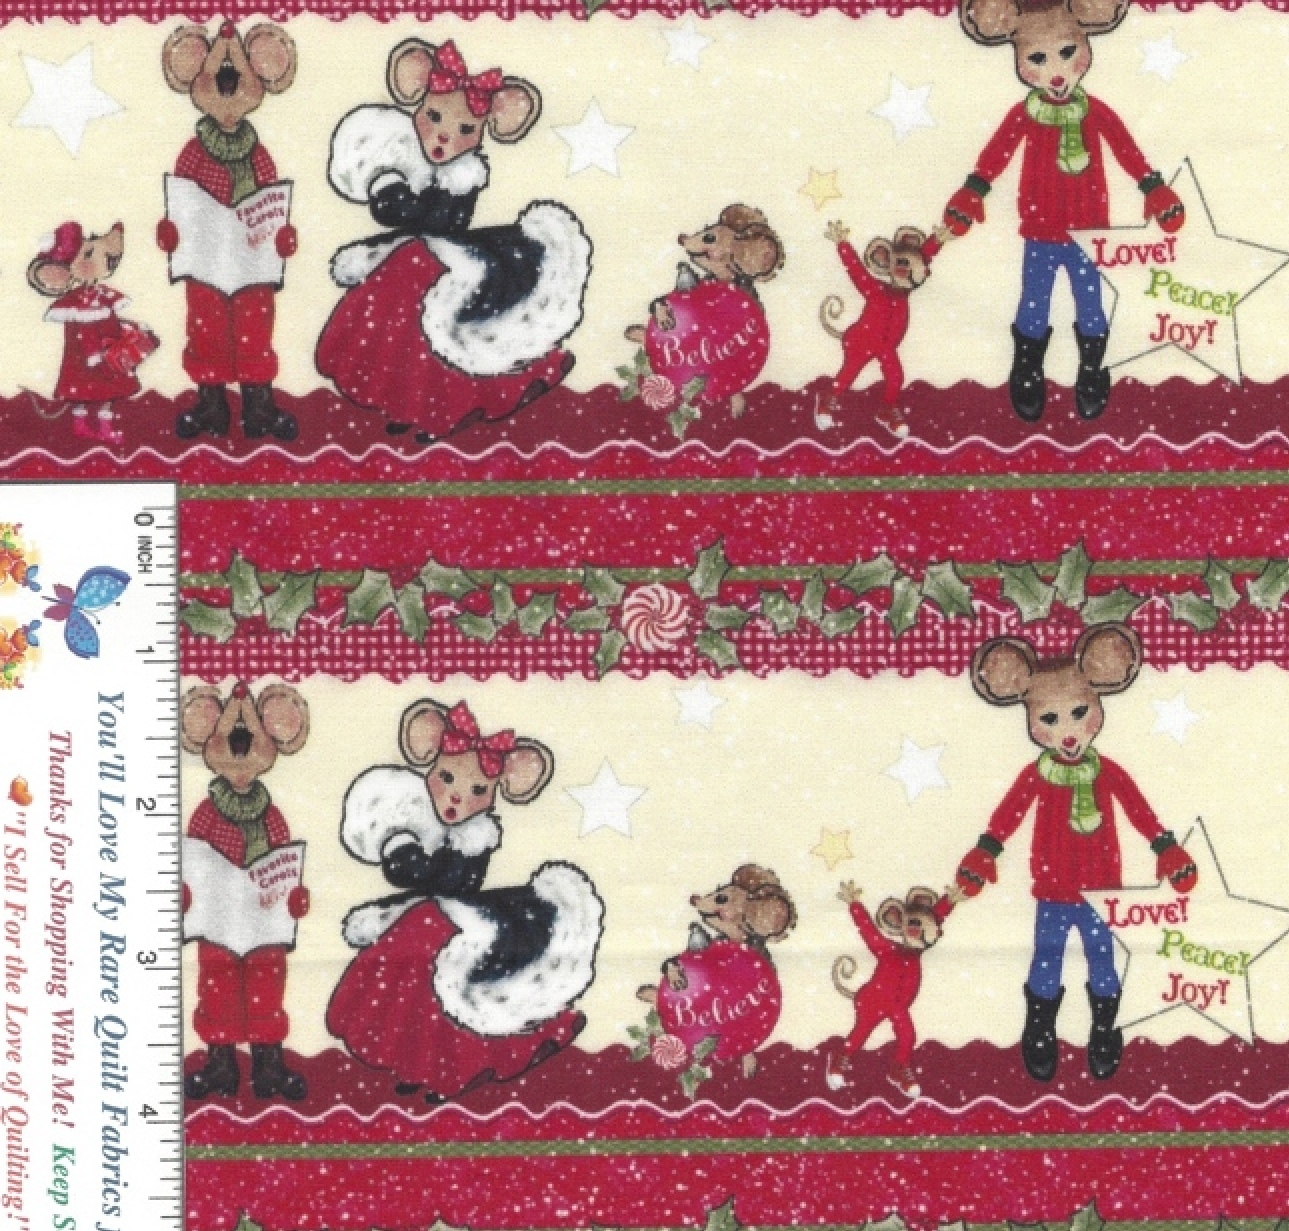 Merry Christmas Mouse, Mice, Two Borders at 68 by 8 inches Exclusive to Divines